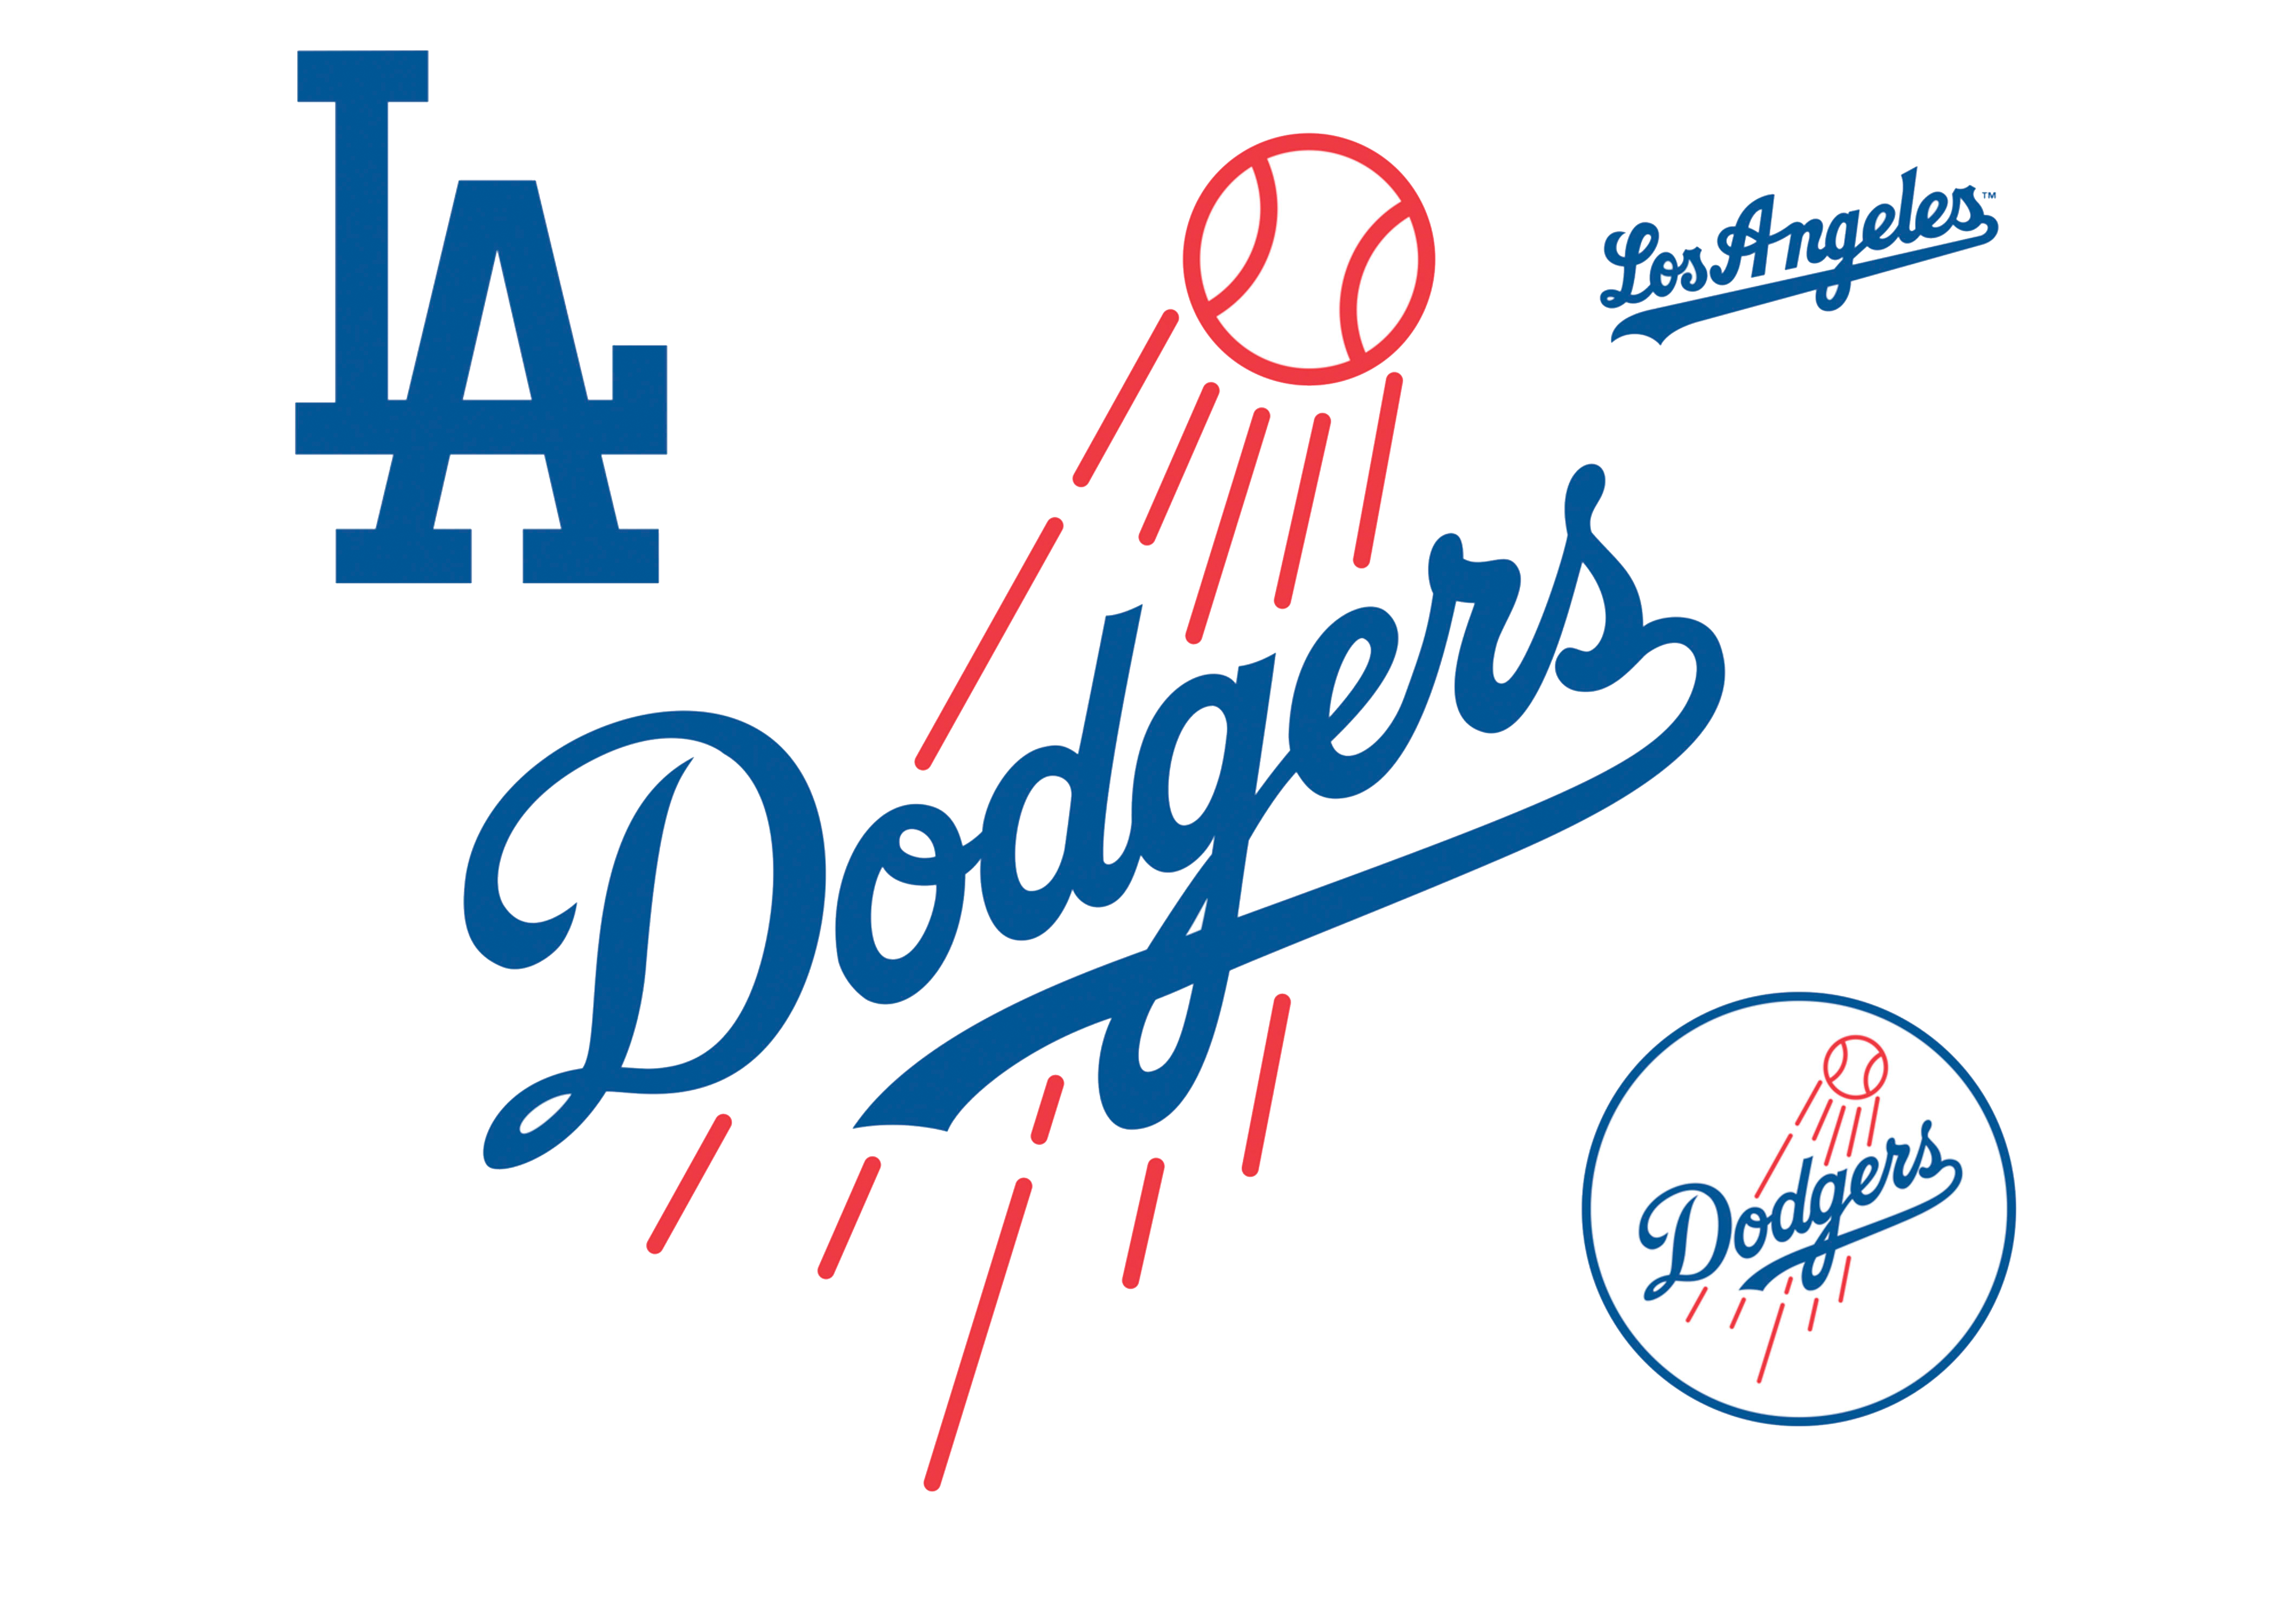 All logos png image. Dodgers drawing vector freeuse